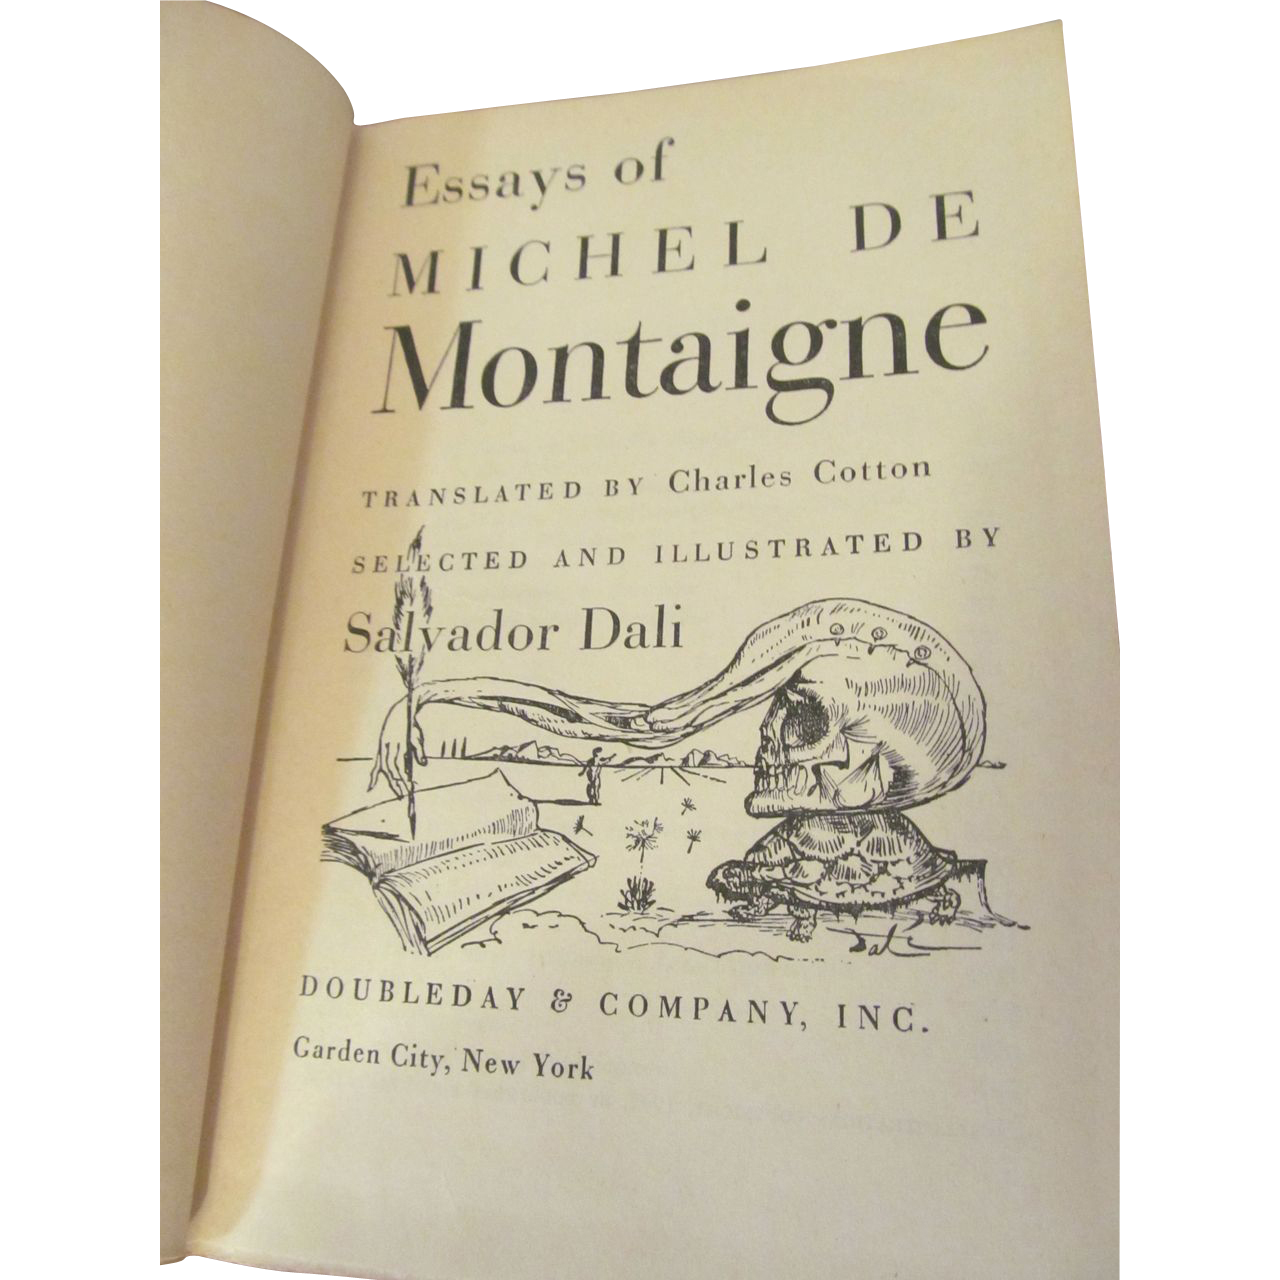 essays of michel de montaigne illustrated by salvador dali  1947 essays of michel de montaigne illustrated by salvador dali from prairieland on ruby lane